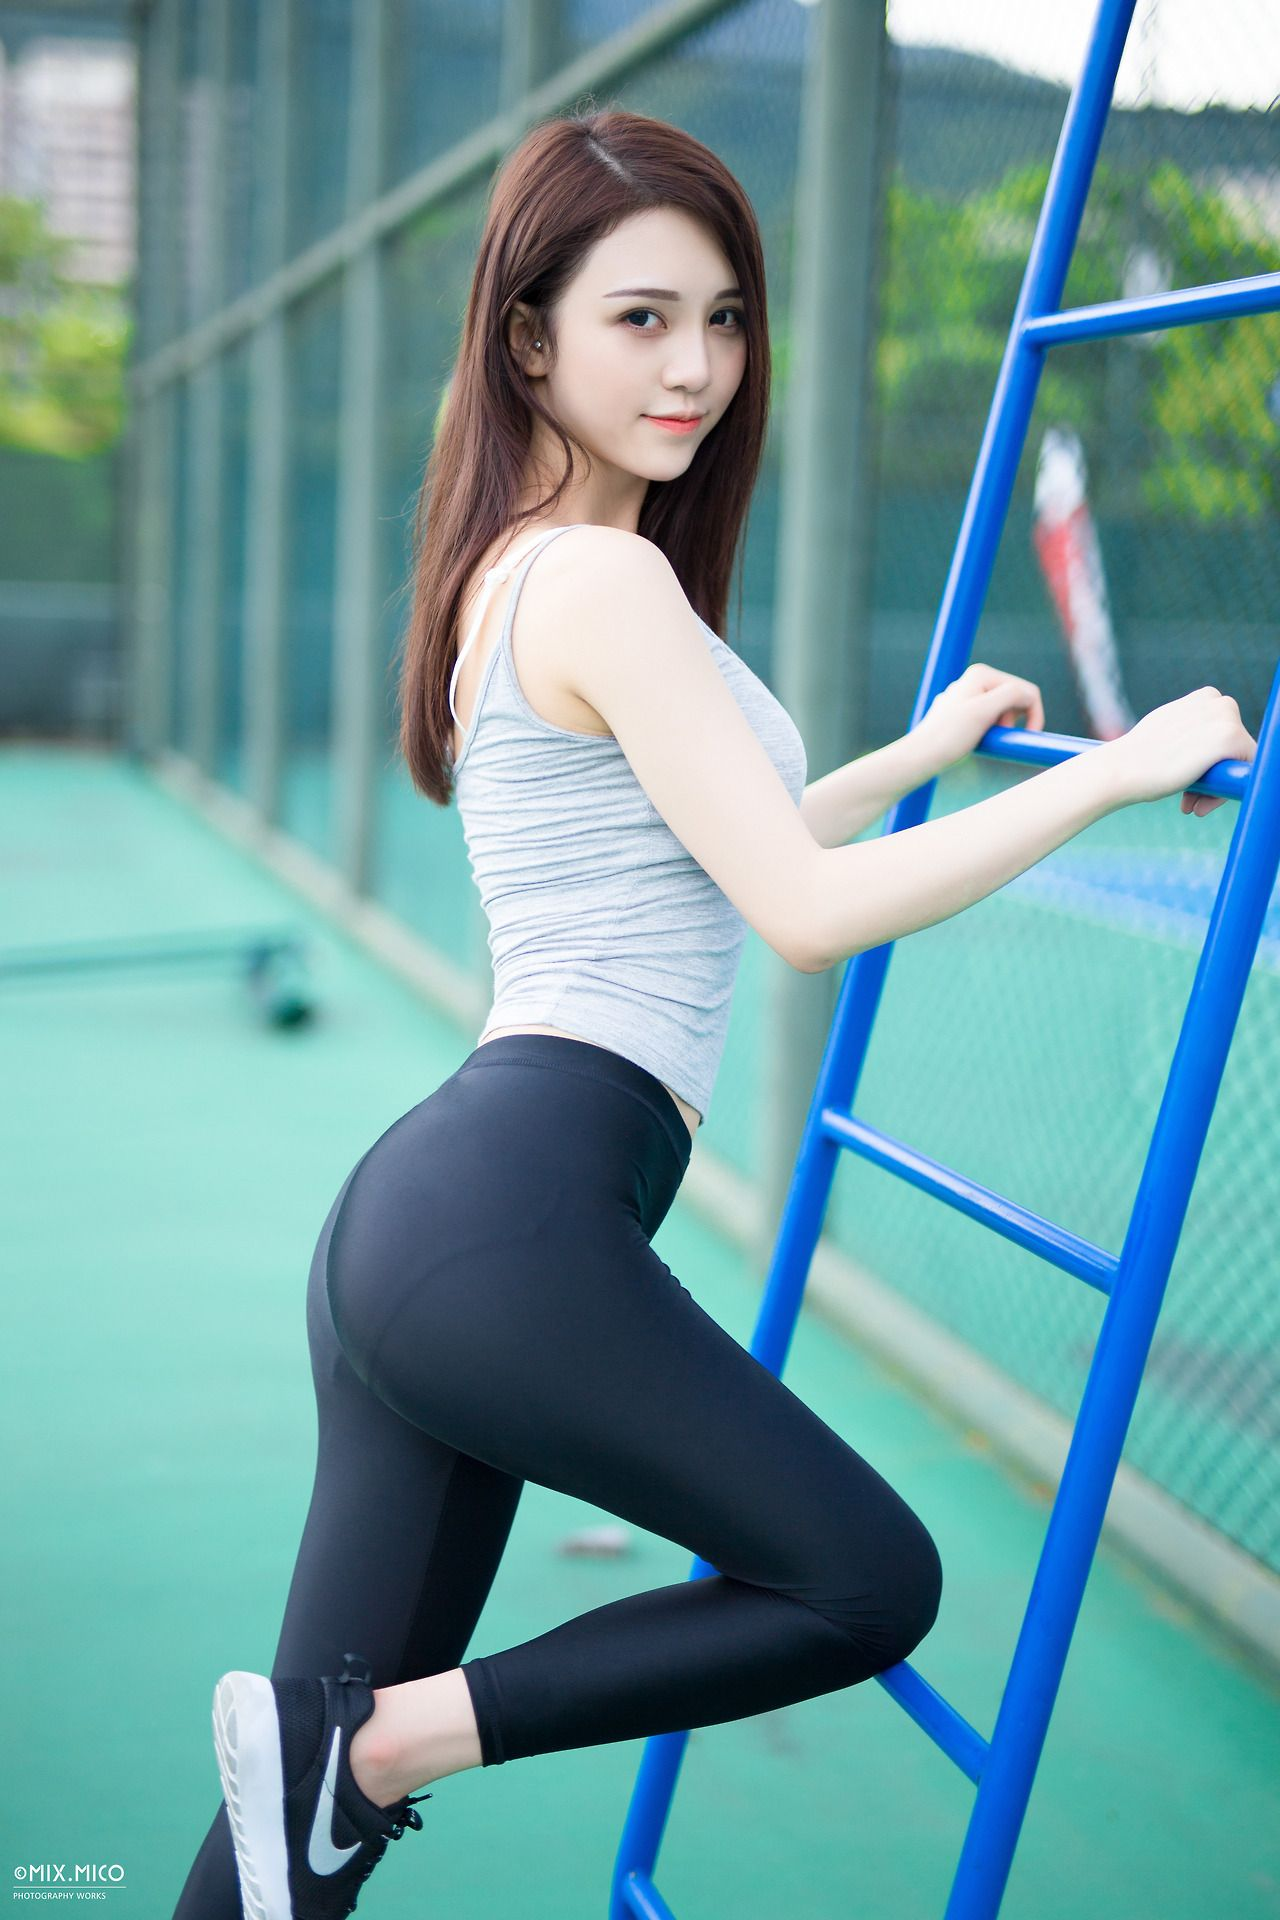 Cute asian girl with tight jeans